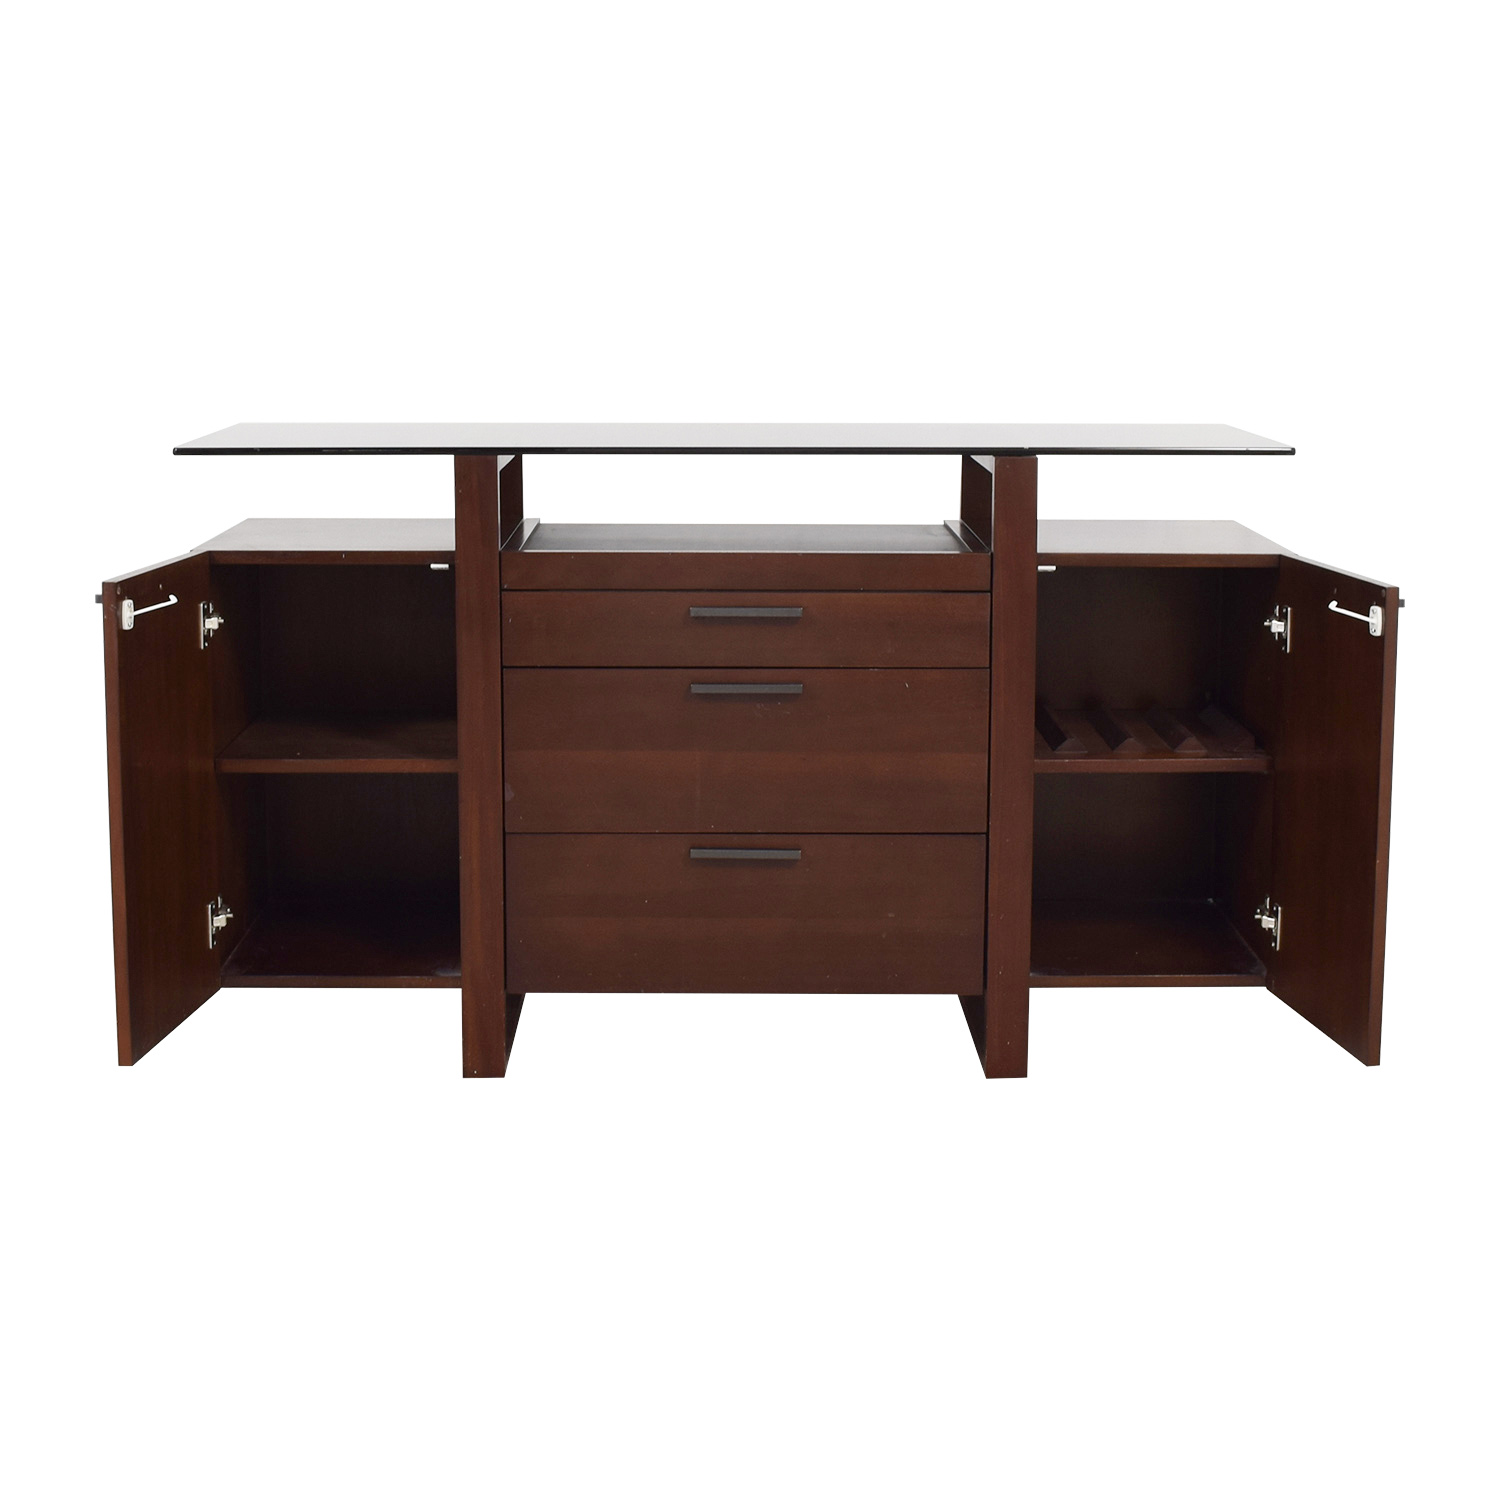 Casana Casana Wood and Smoked Glass Buffet